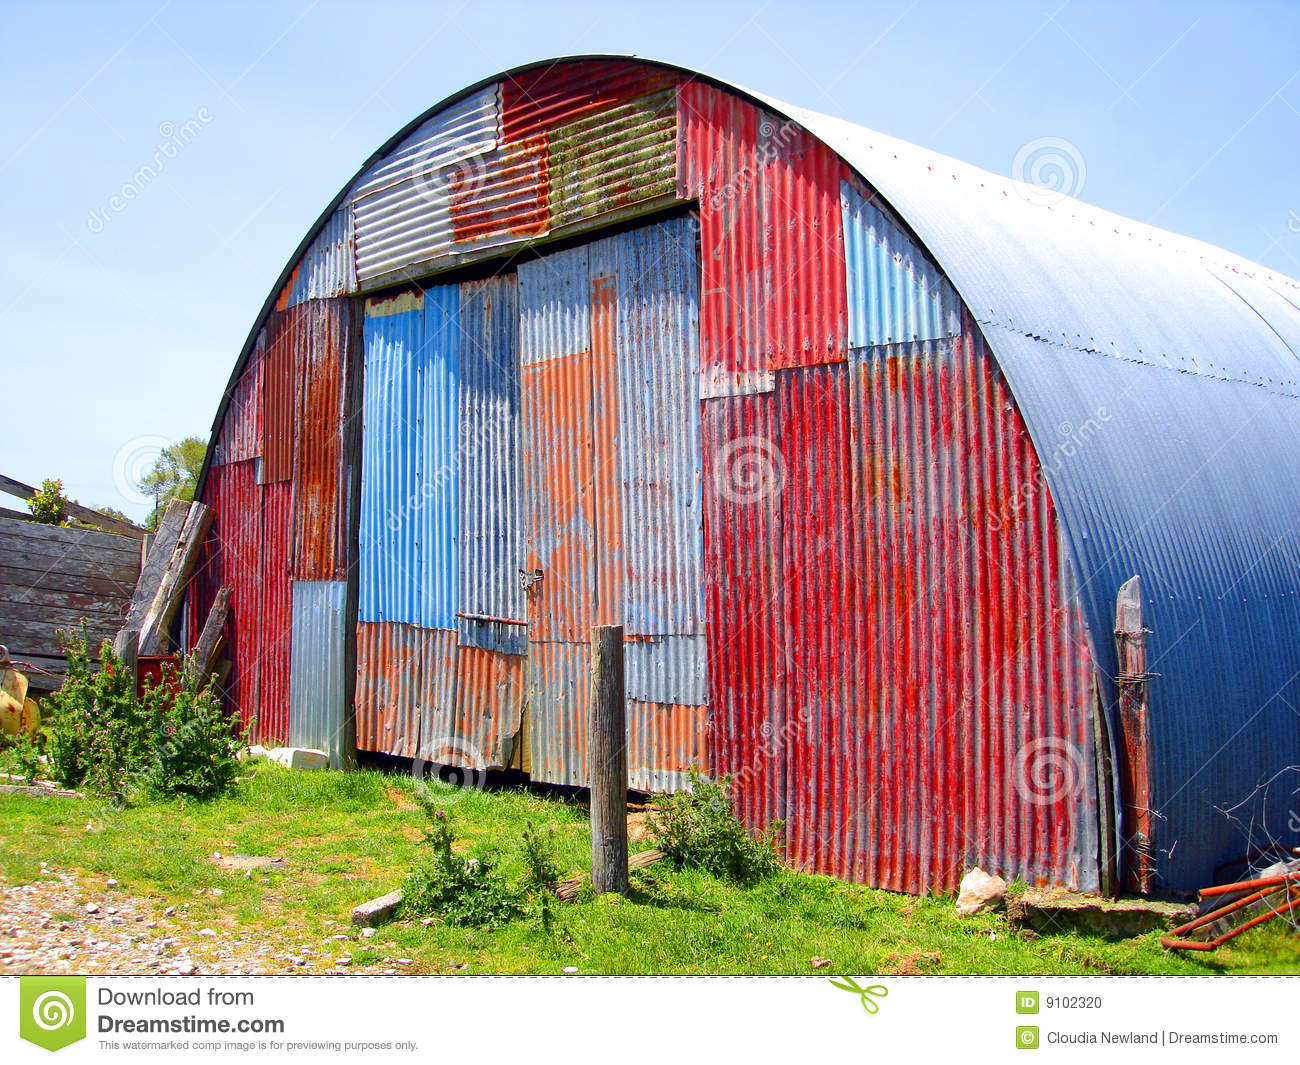 Round Metal Shed With Mismatched Paint Stock Photo   Image  9102320